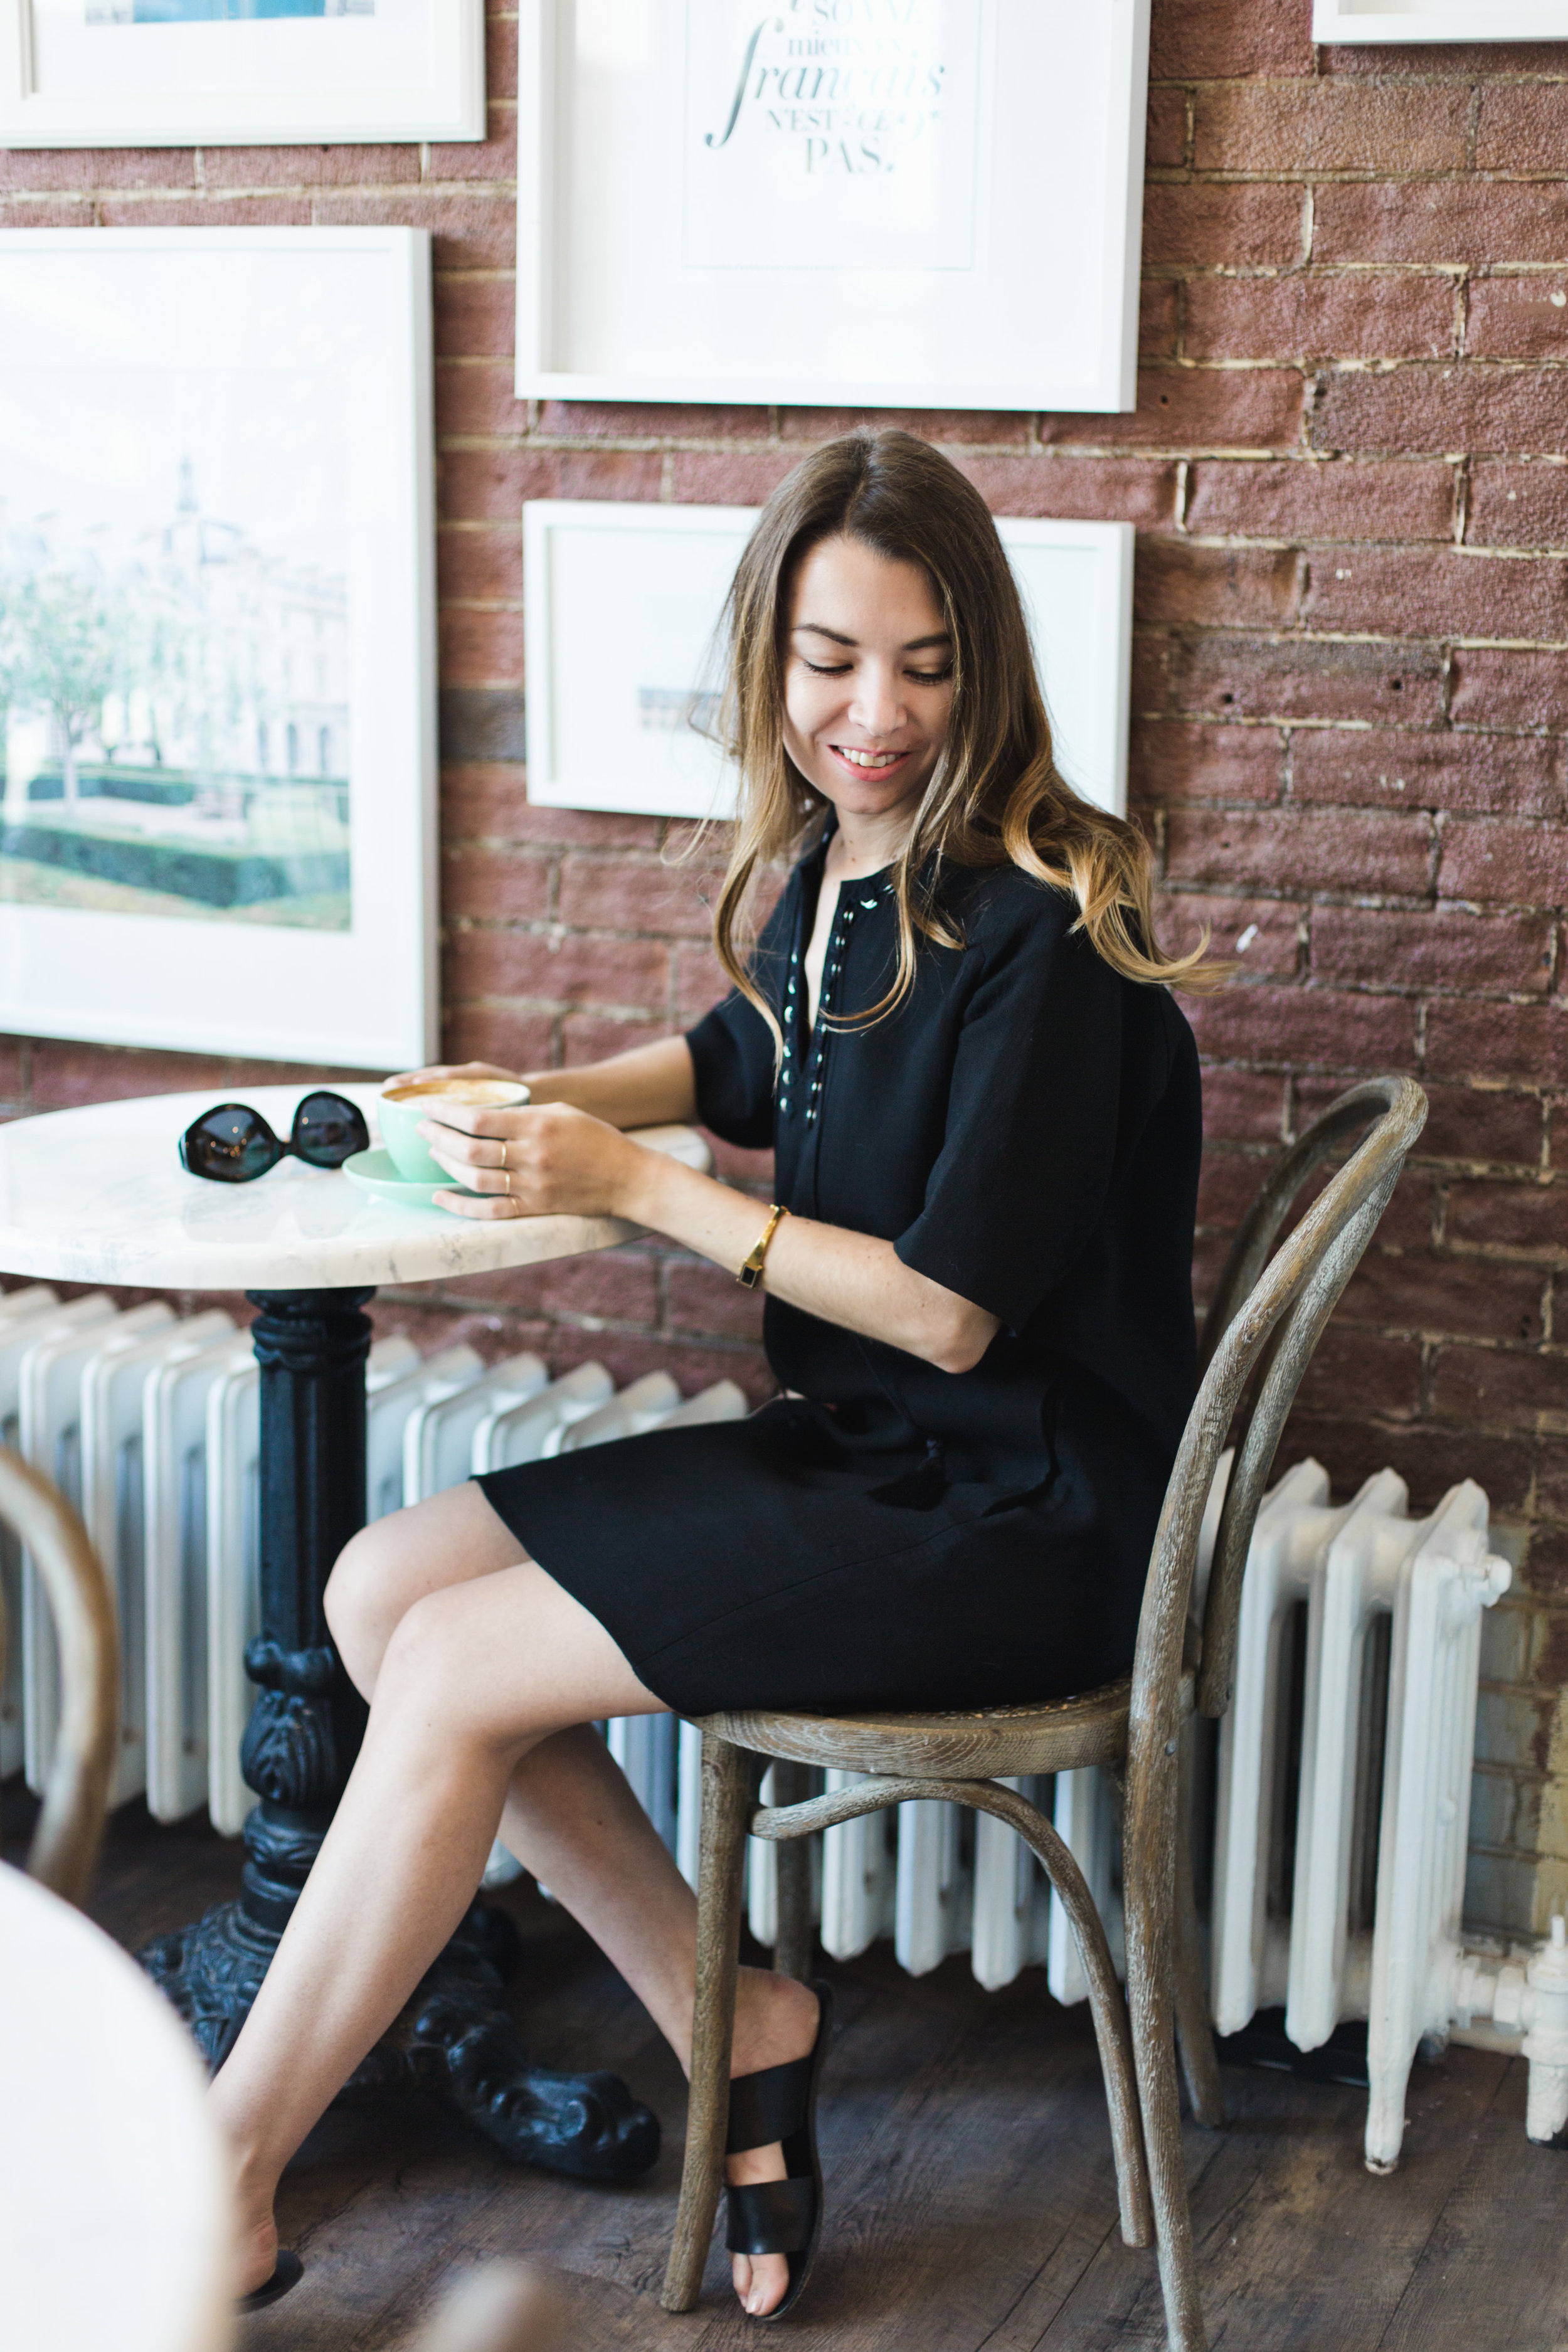 Styled: The Lace-Up LBD